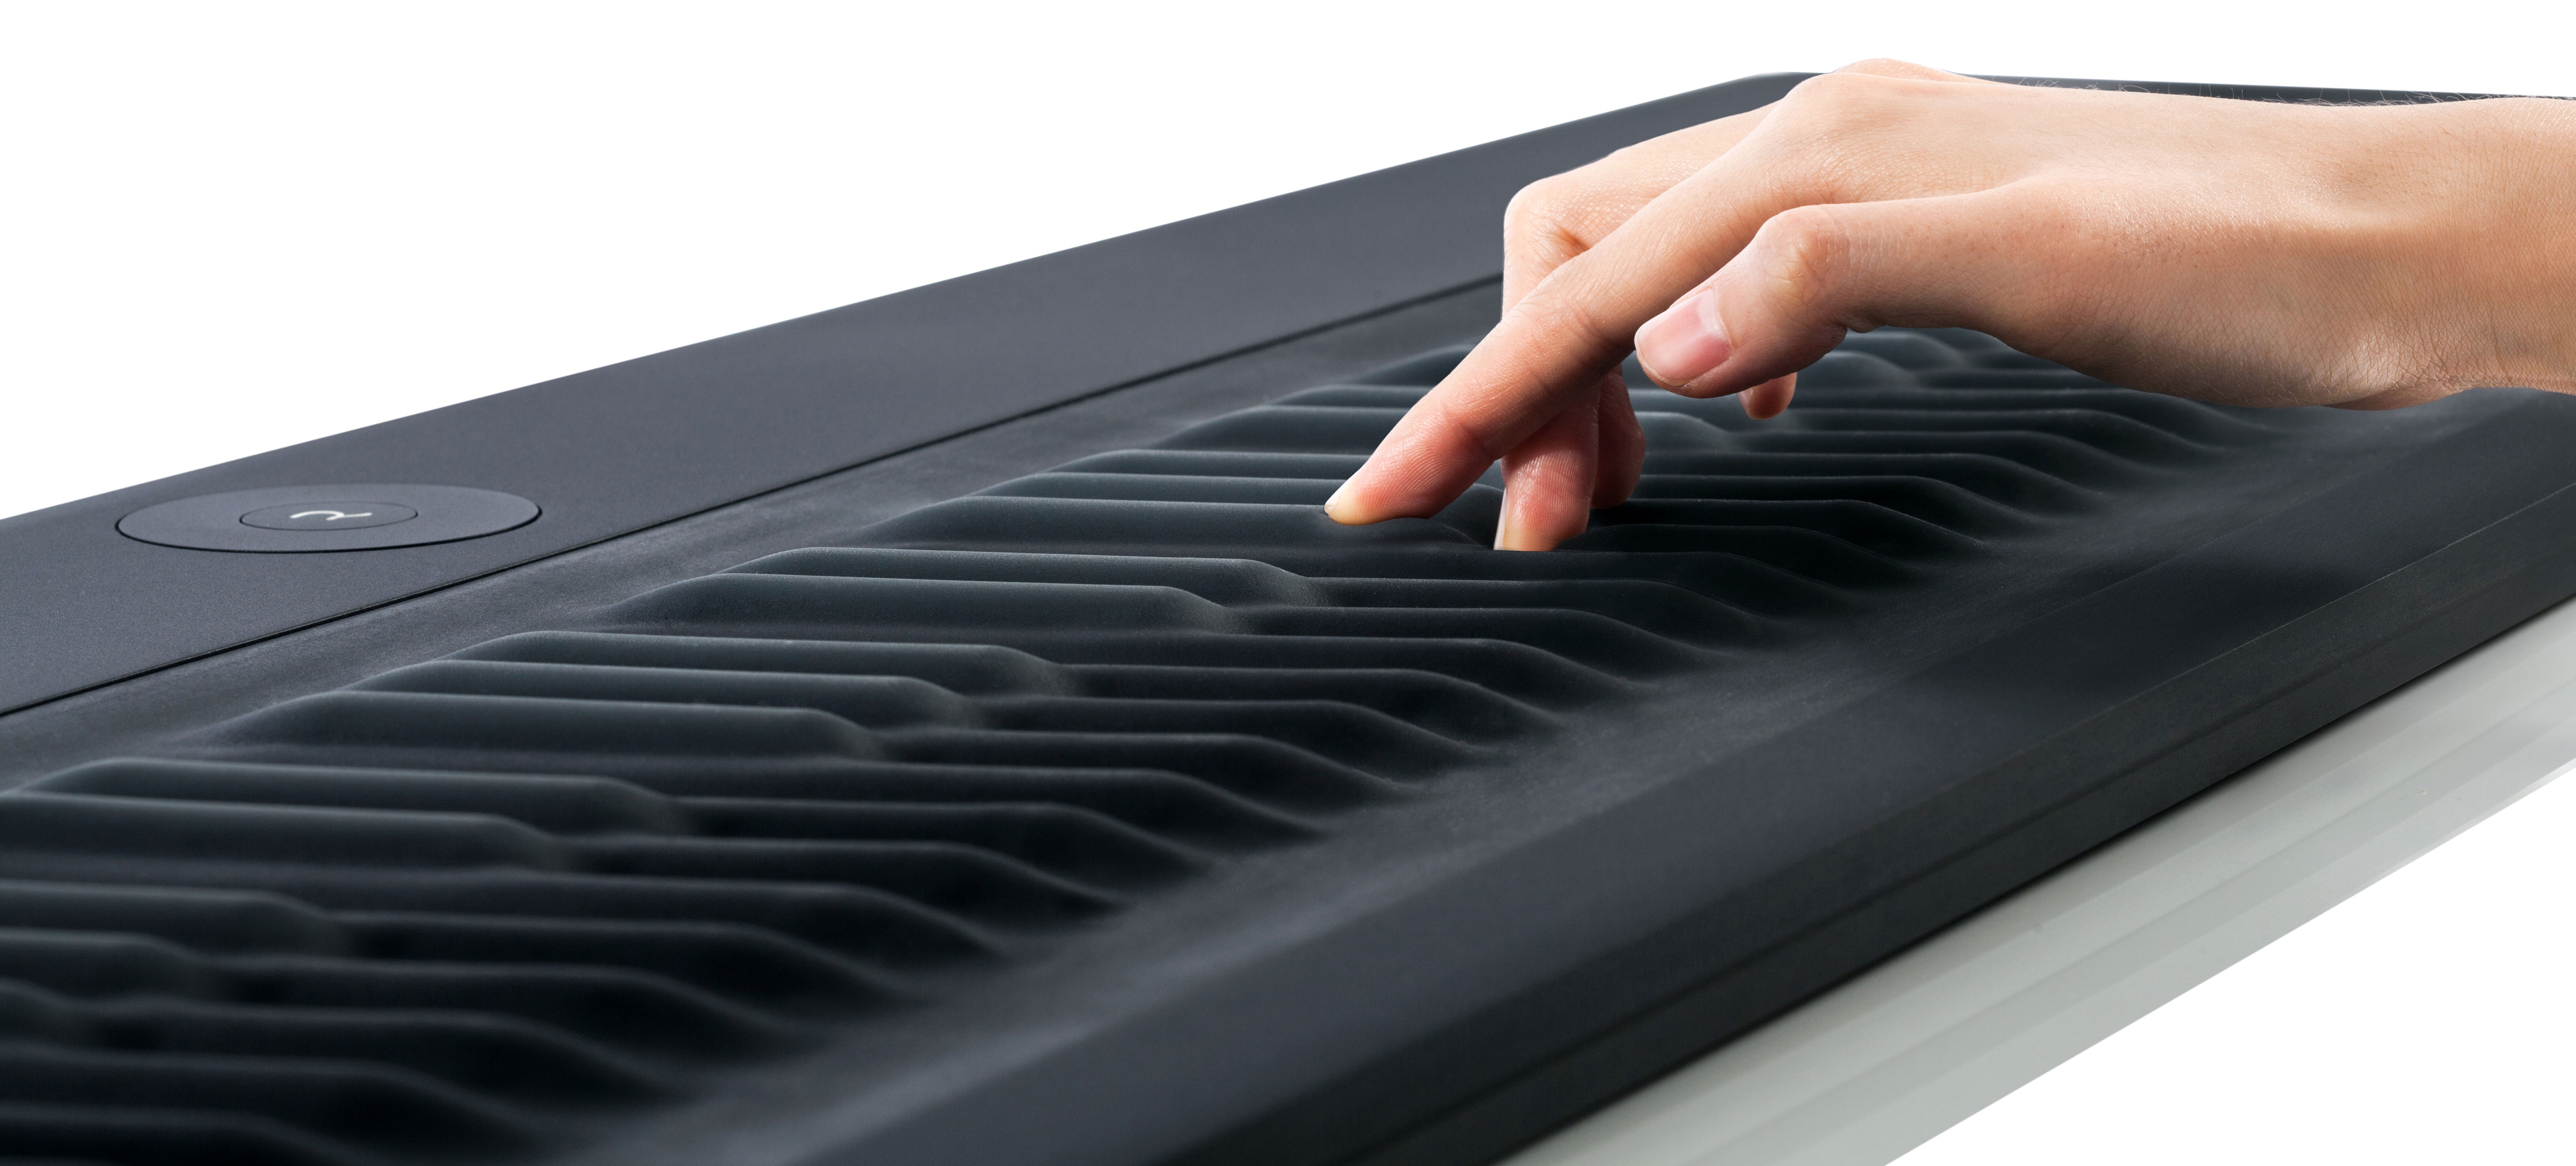 The Roli Seaboard Grand Stage features MPE technology for expressive performances